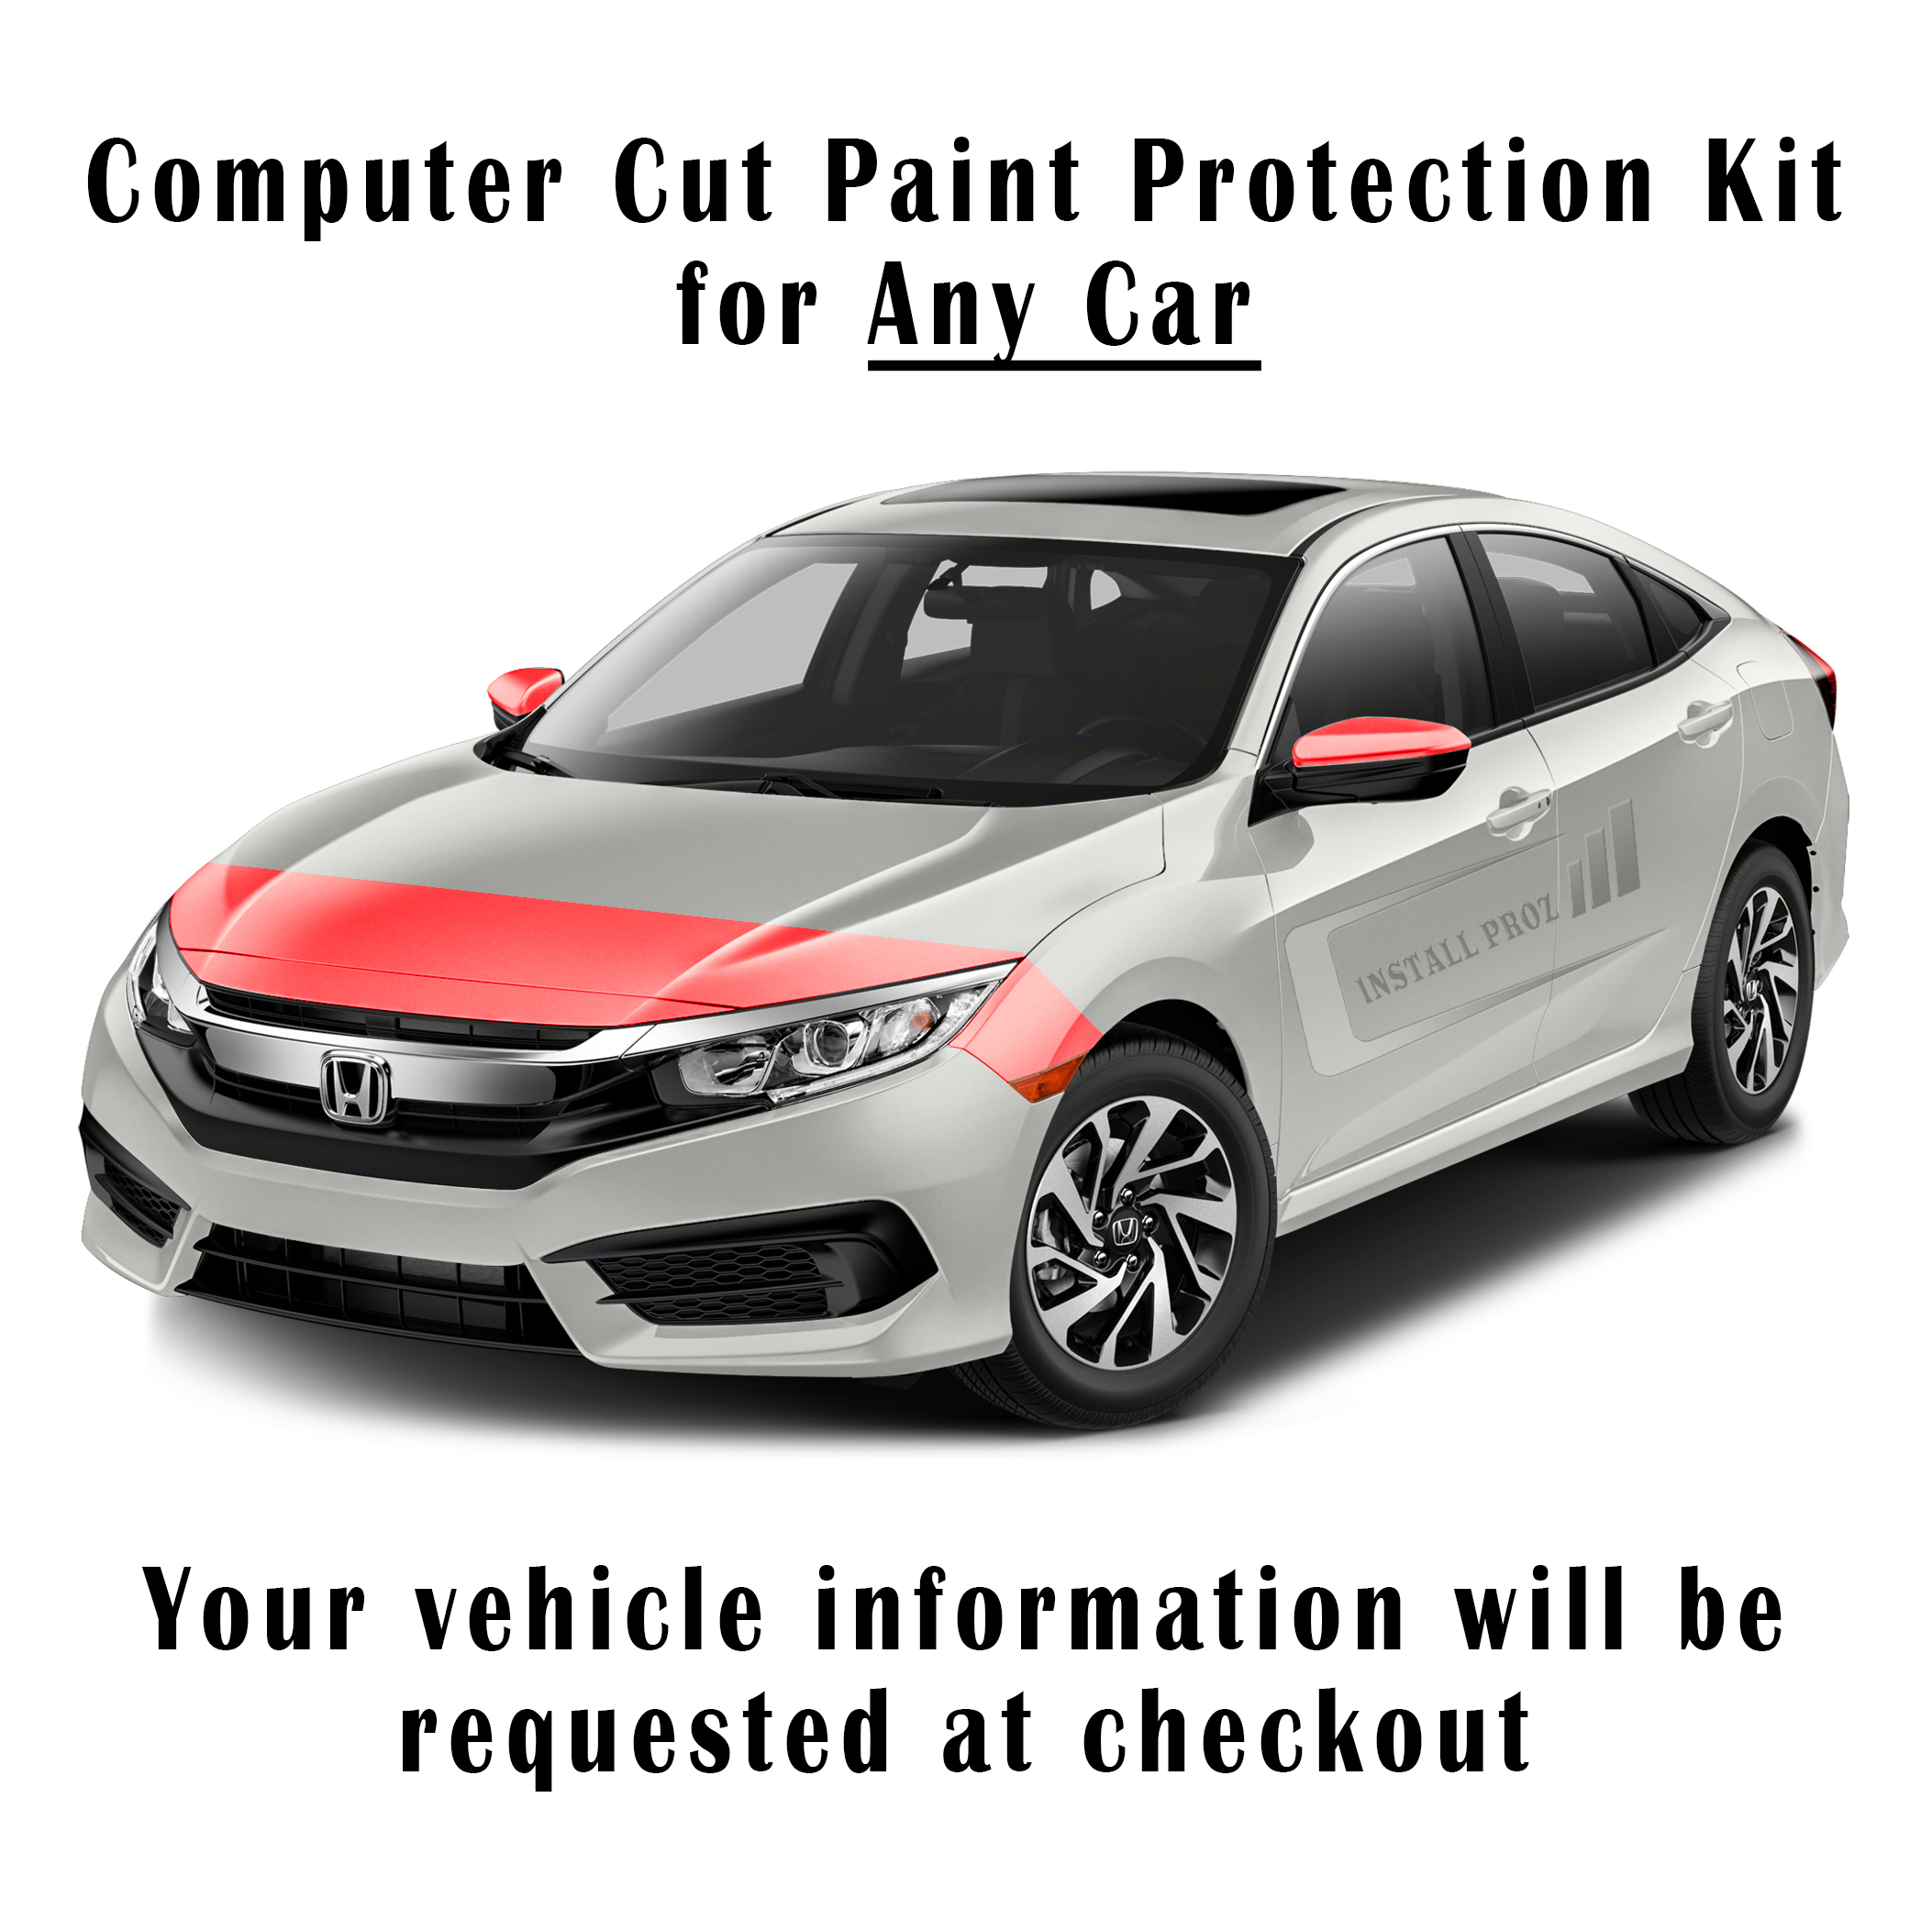 Self Healing Clear Paint Protection Film Kit Computer Cut For Any Car Hood Fenders Mirrors